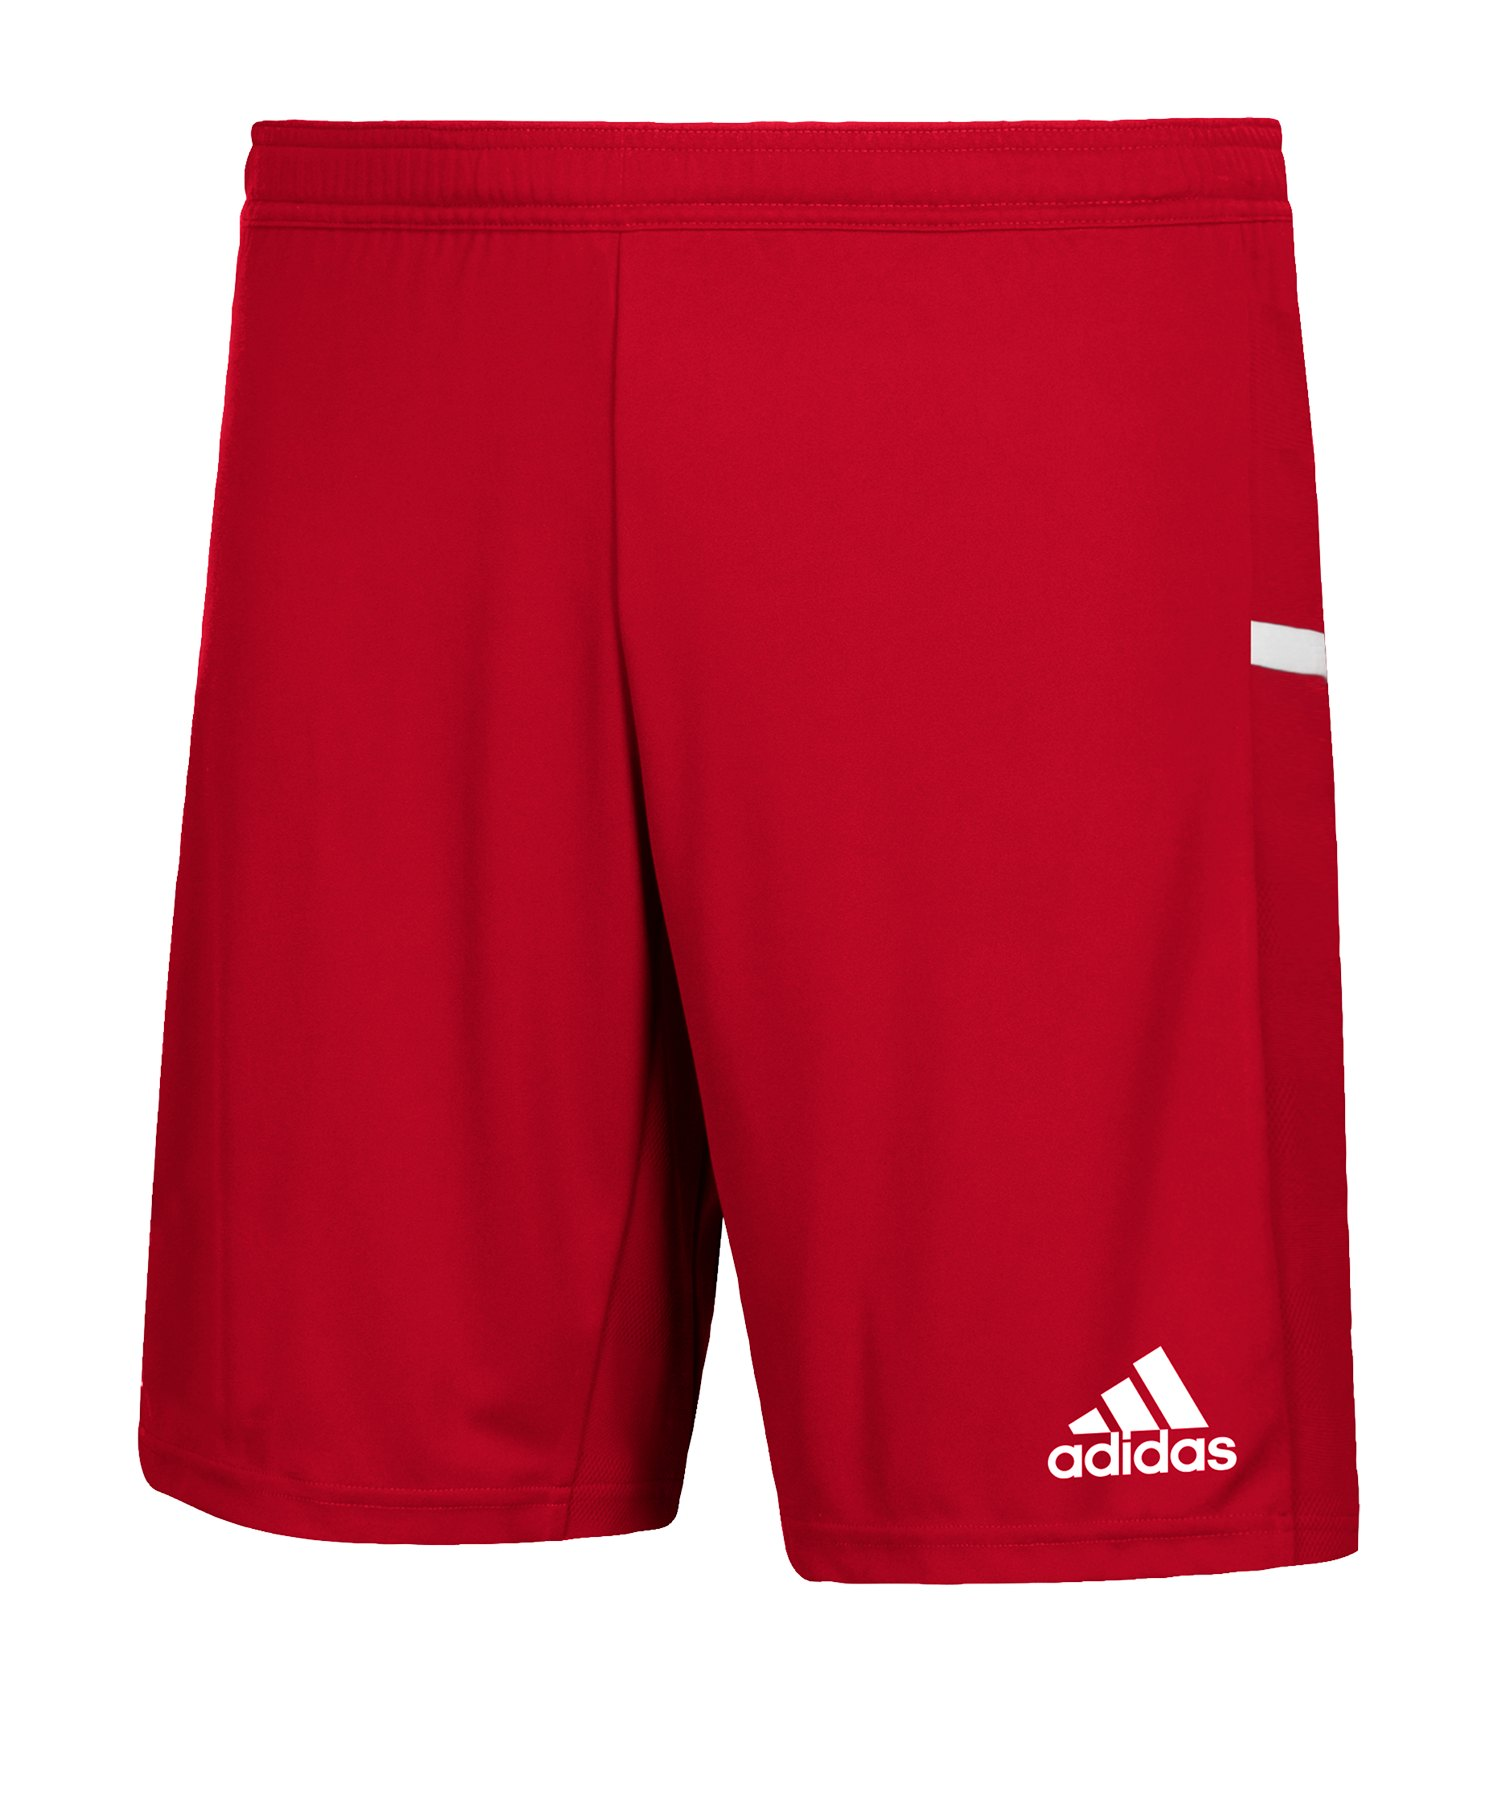 adidas Team 19 Knitted Short Kids Rot Weiss - rot